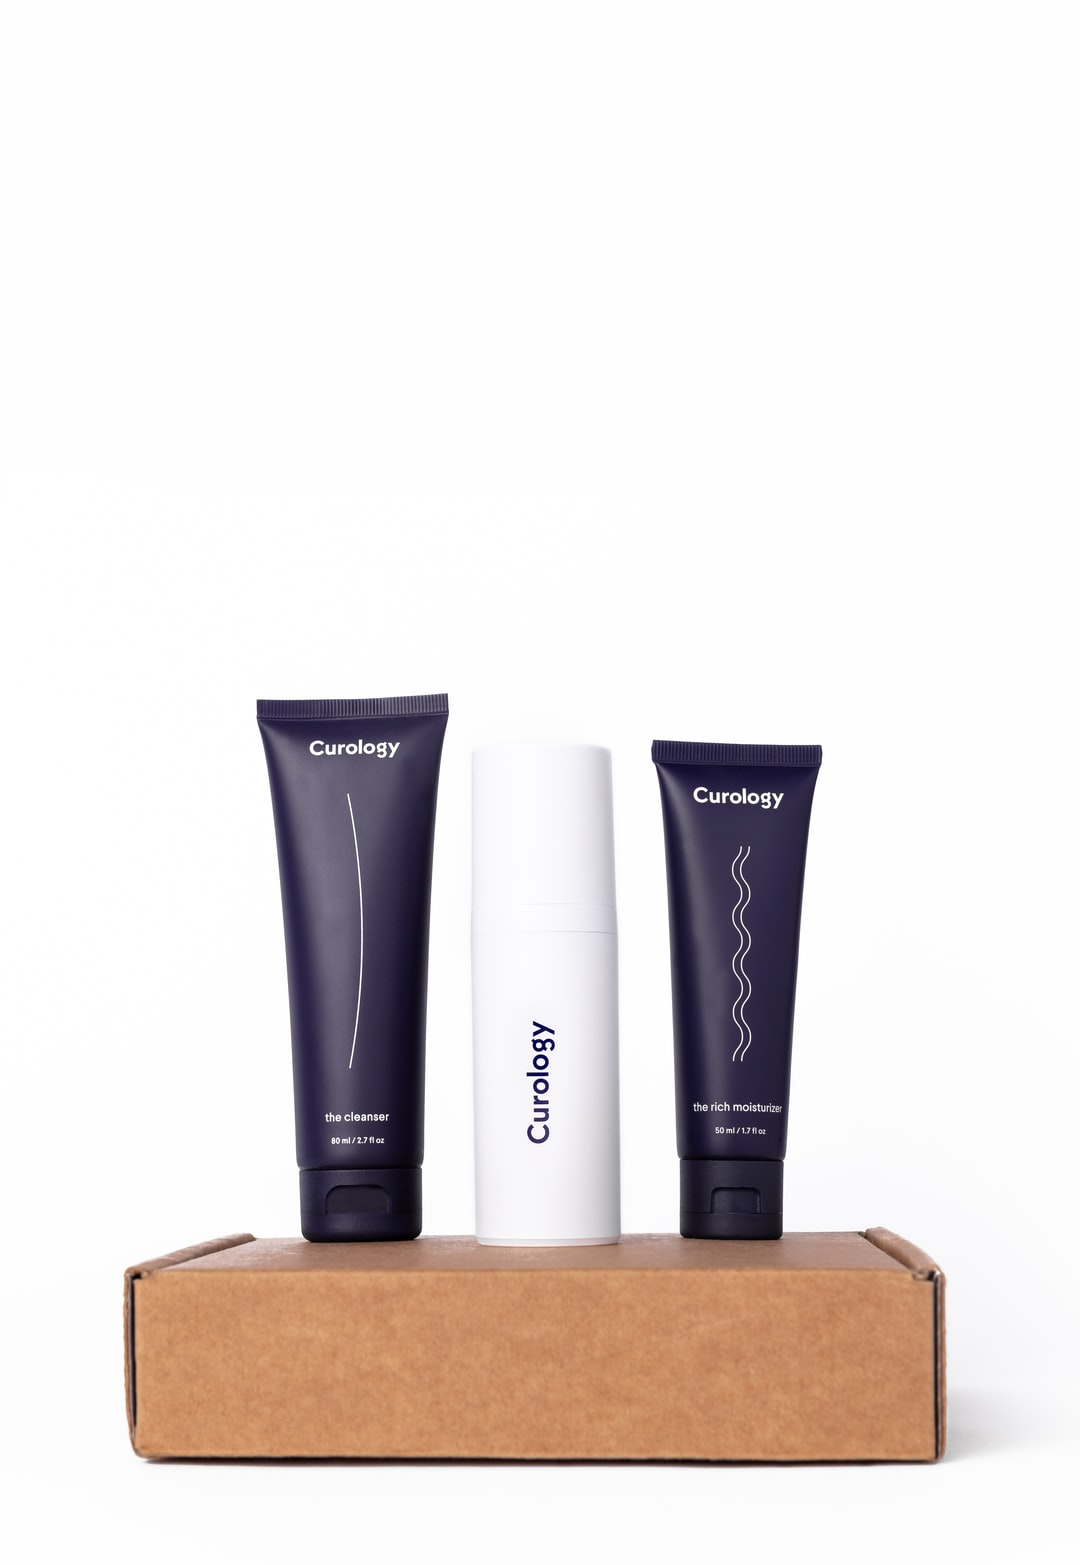 curology product set on box with white background